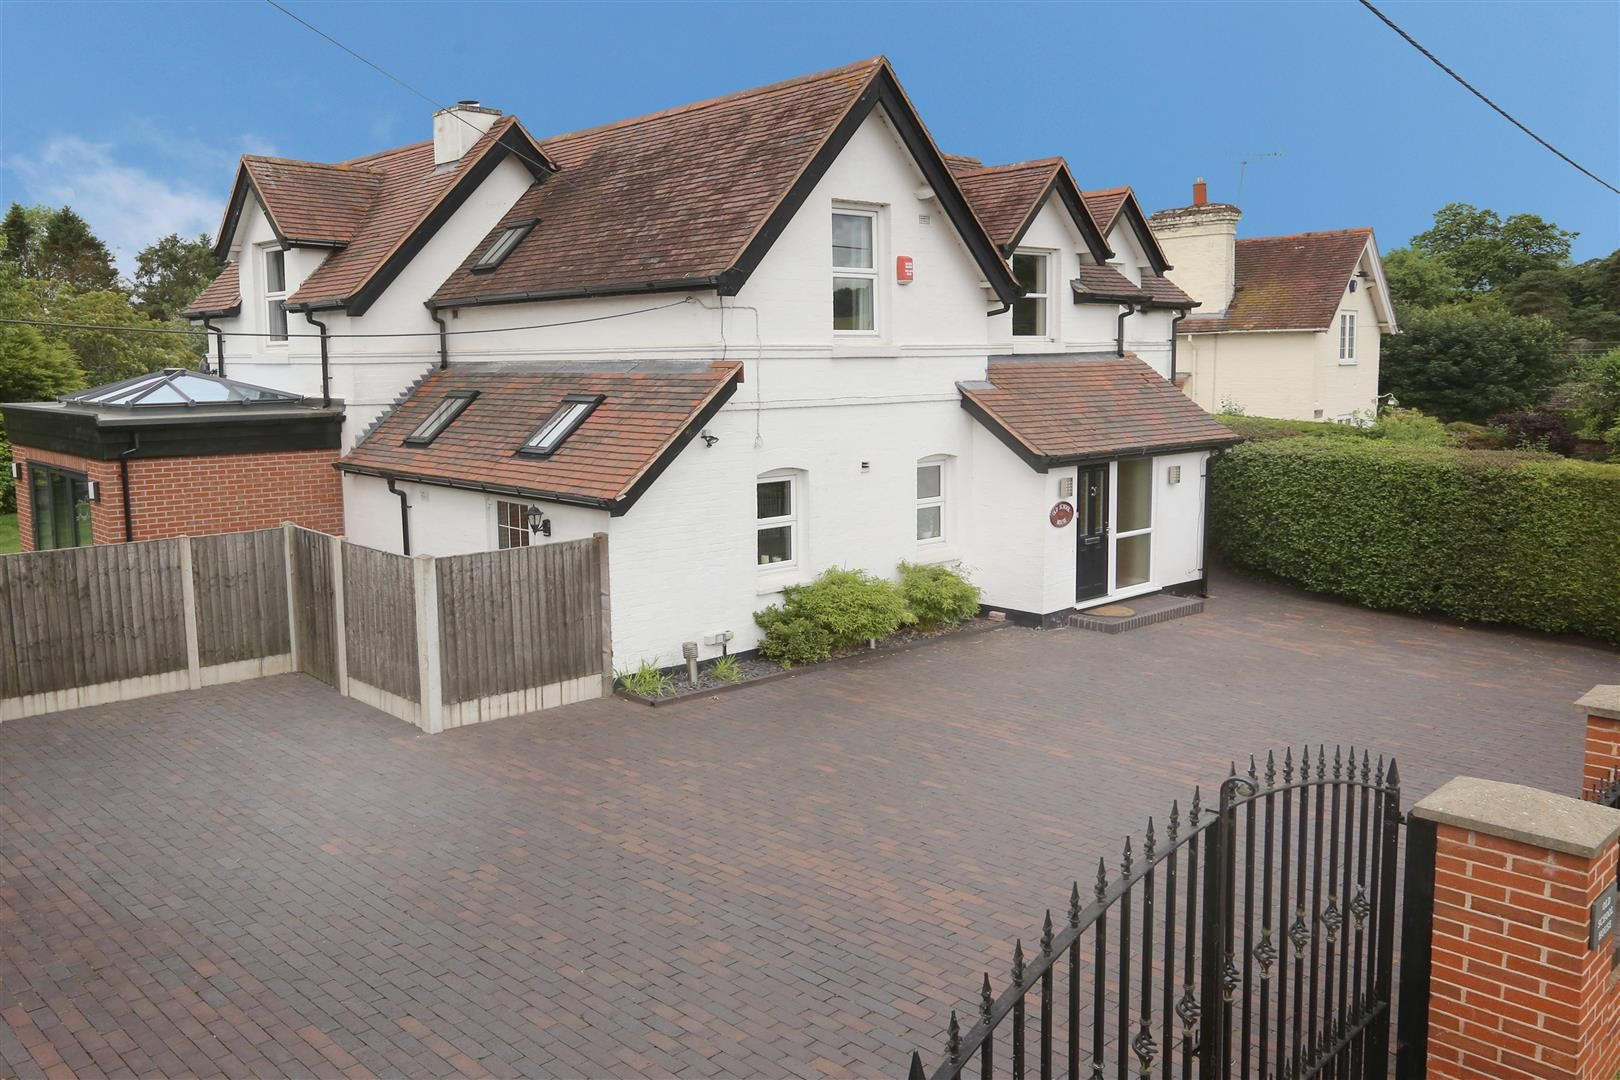 4 bed house for sale in Churchill 30